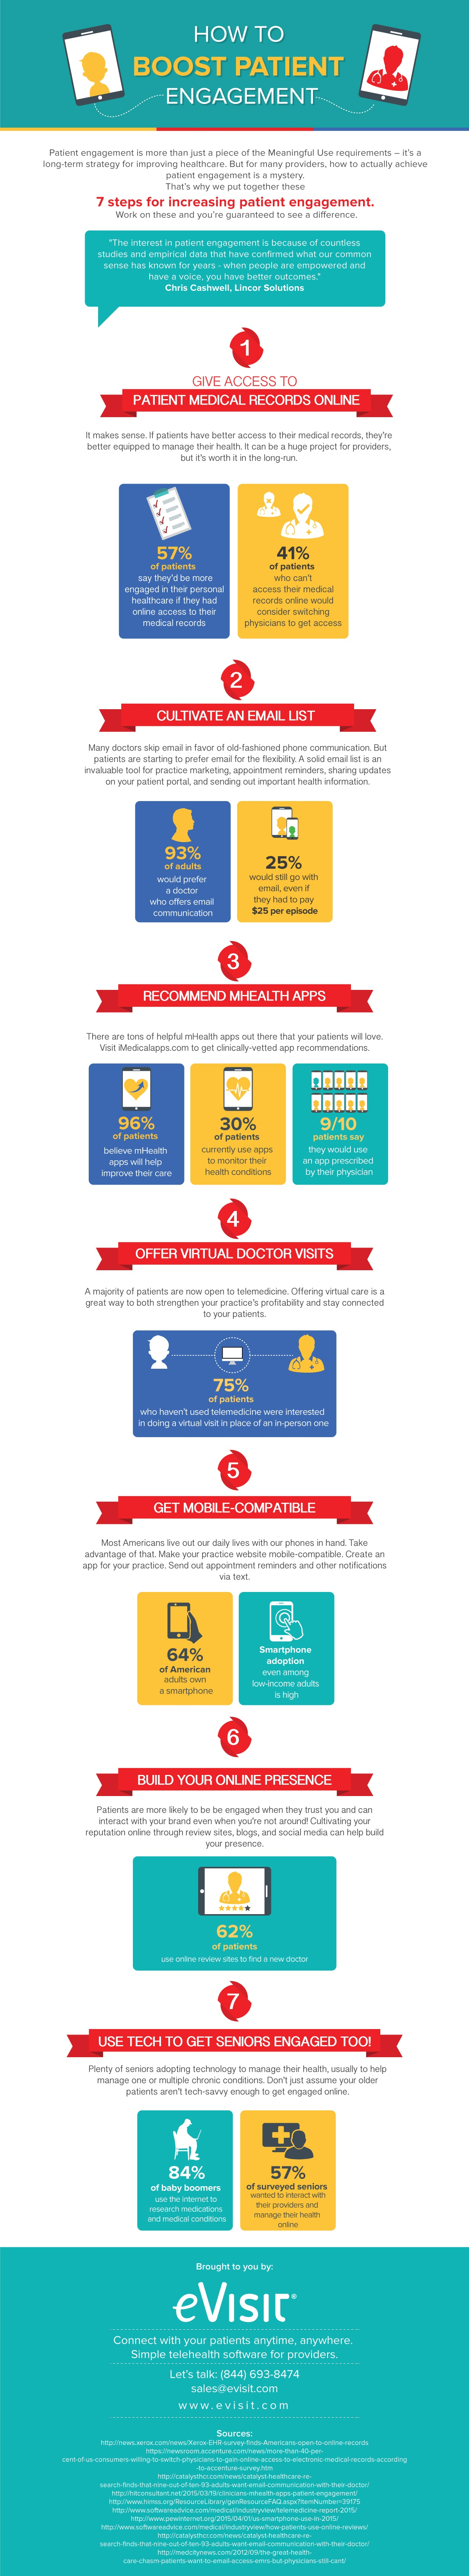 How to increase patient engagement infographic